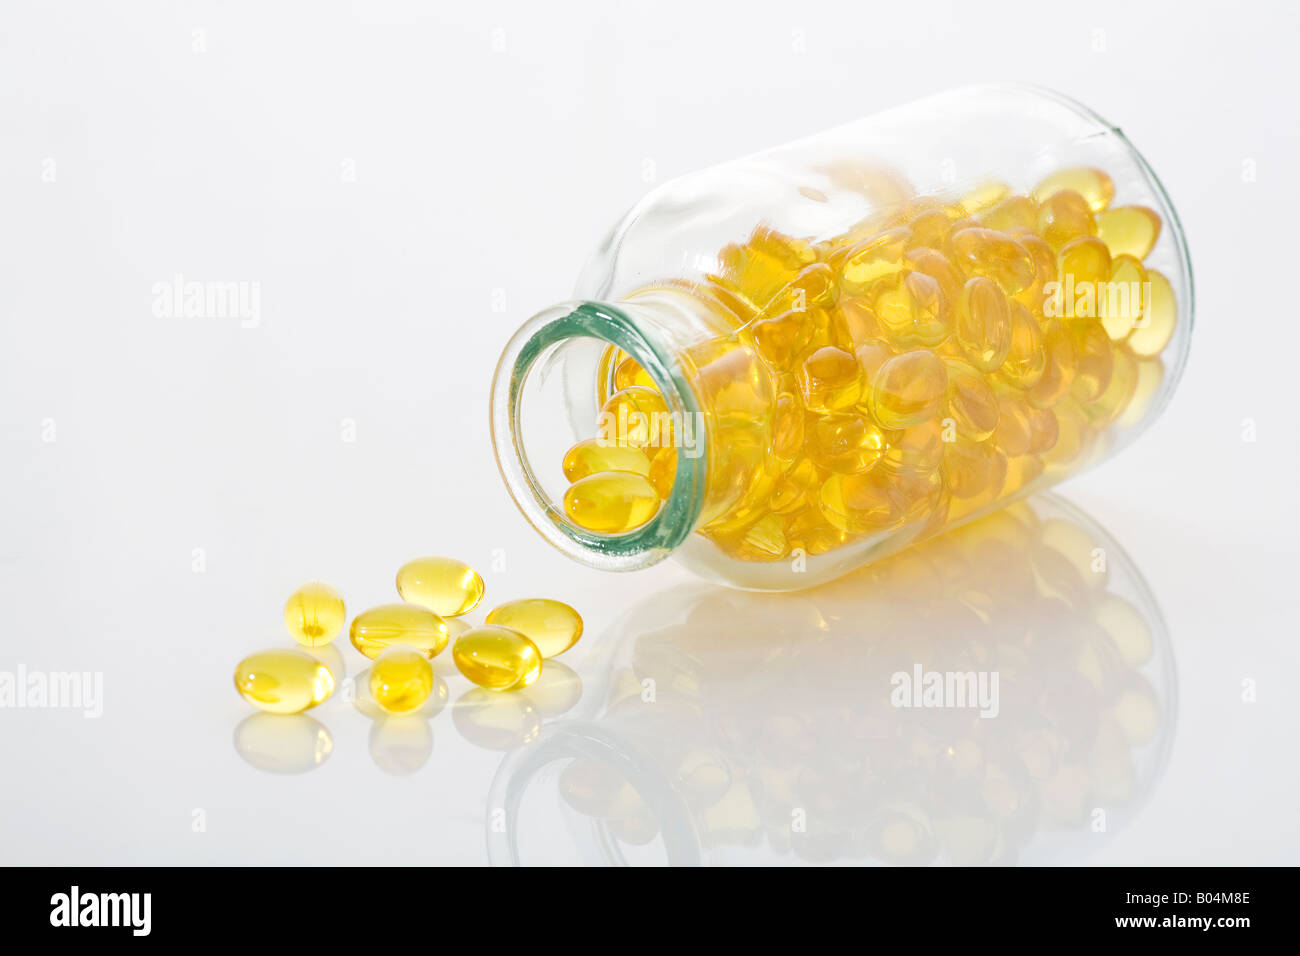 Fish oil pills in clear glass bottle. Stock Photo